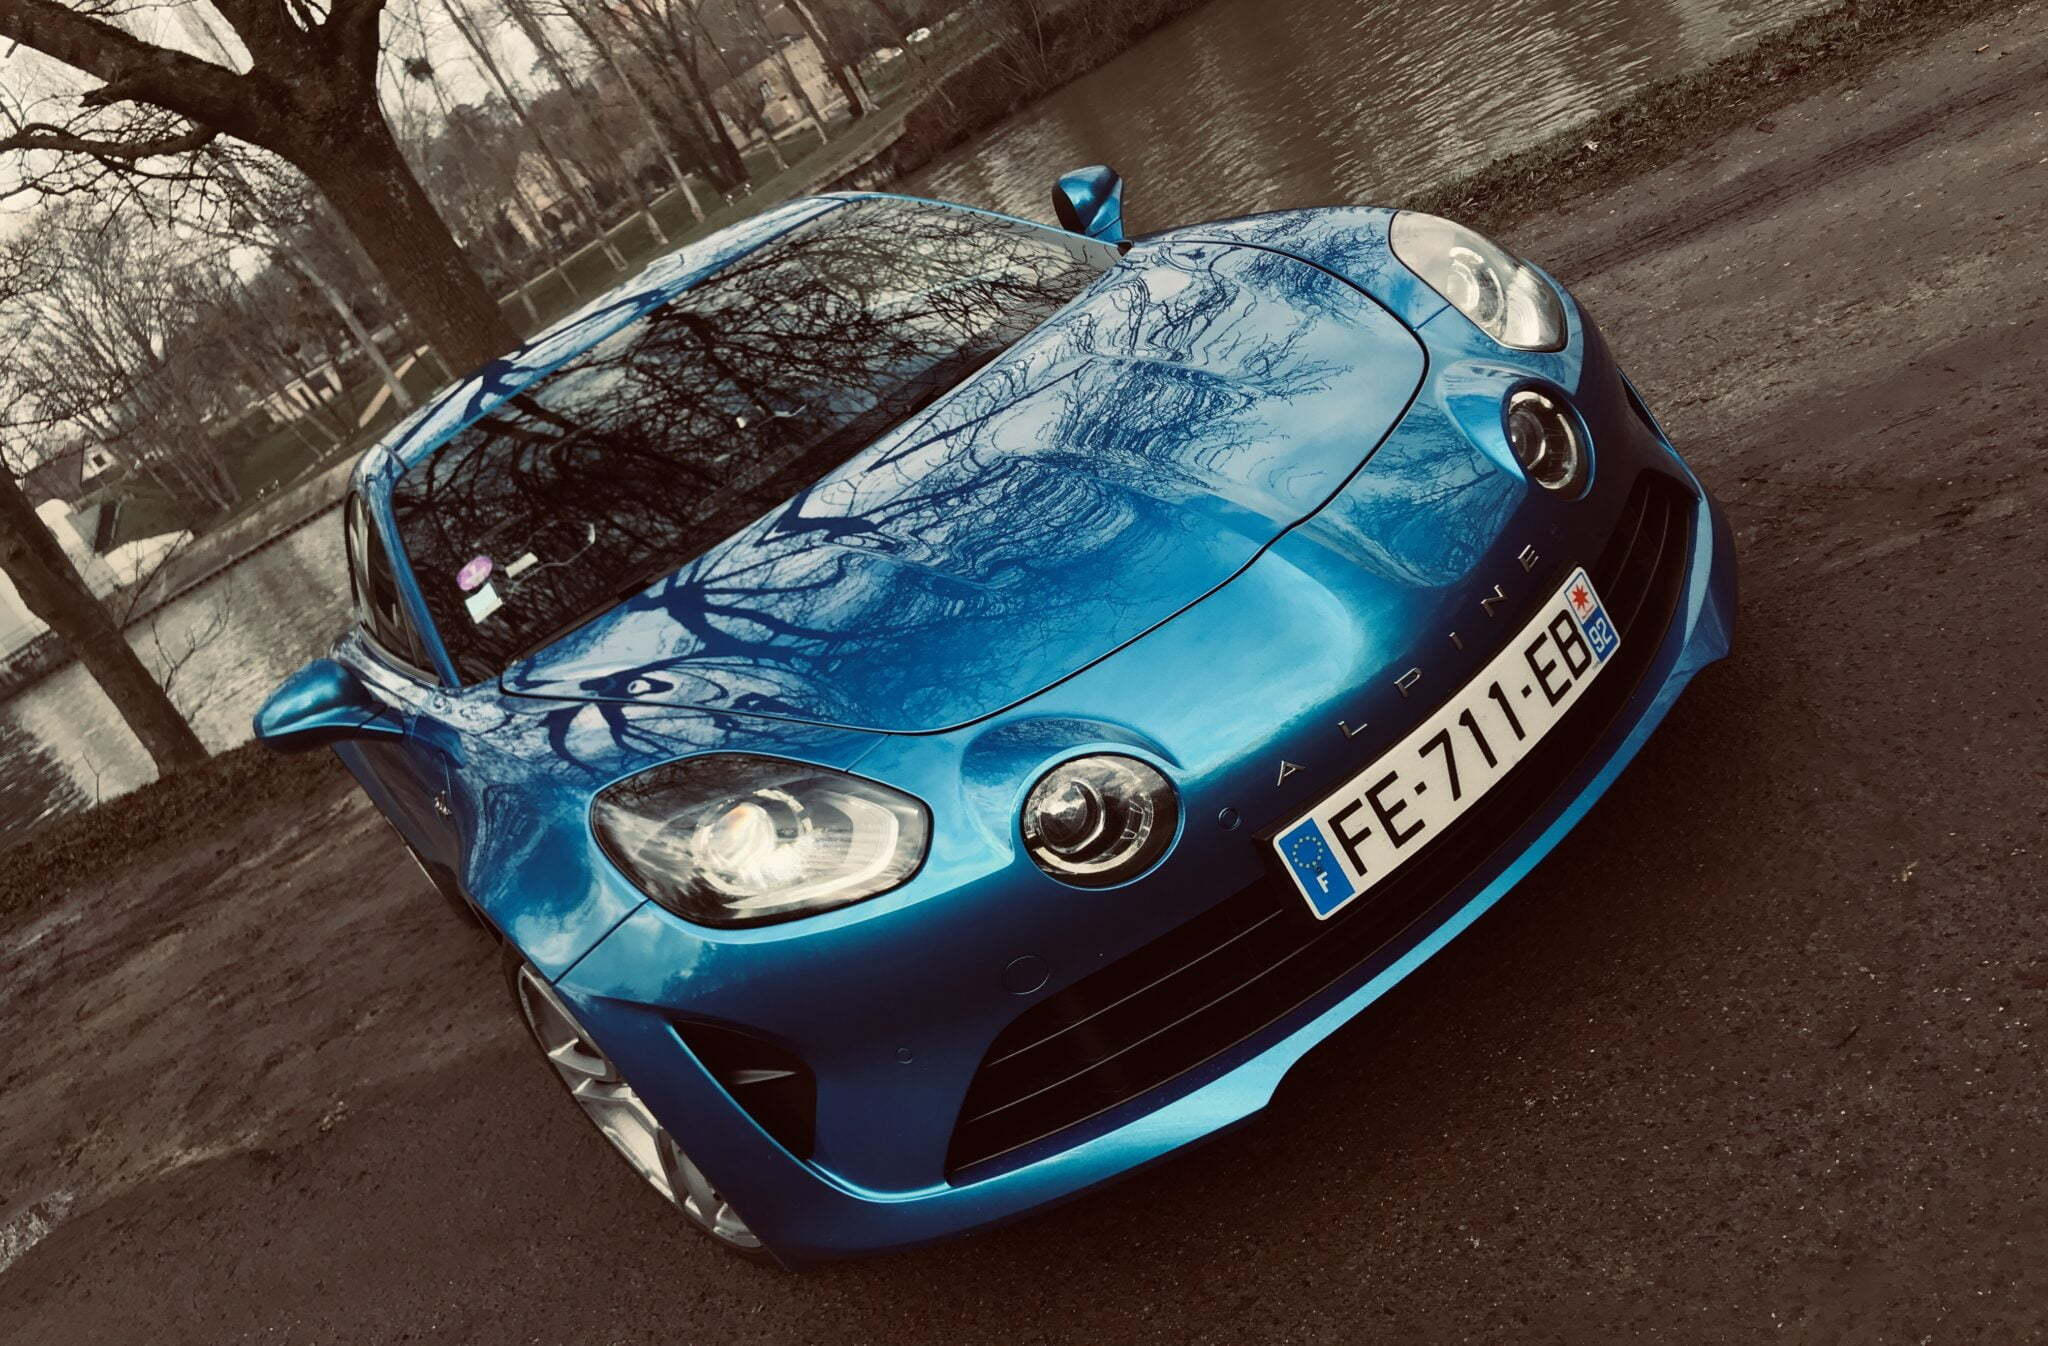 B2486E7E 2E14 4EE4 9DD1 815A14CF94B3 | A l'essai : Alpine A110, des sensations Pures.